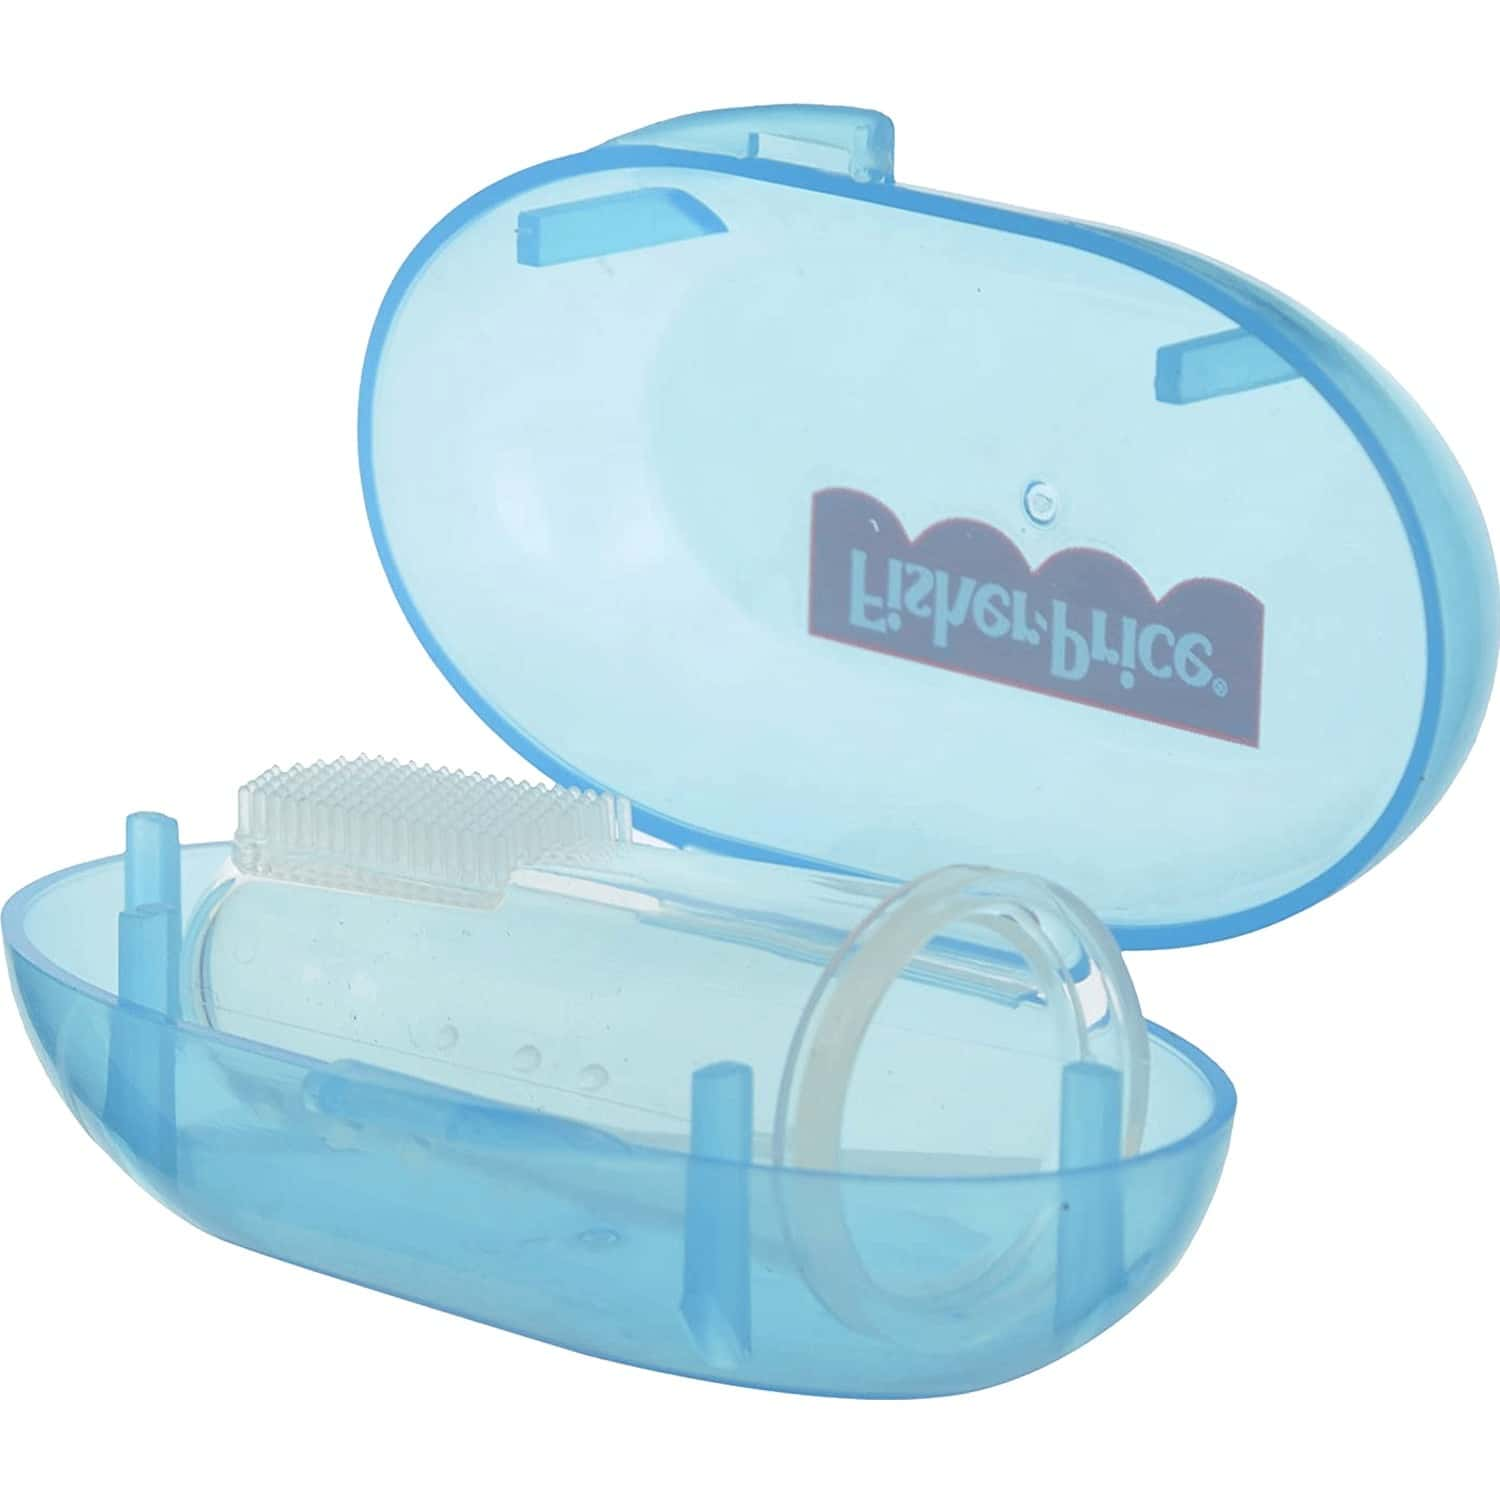 Fisher Price Silicone Baby Finger Brush With Case, One Size, Blue